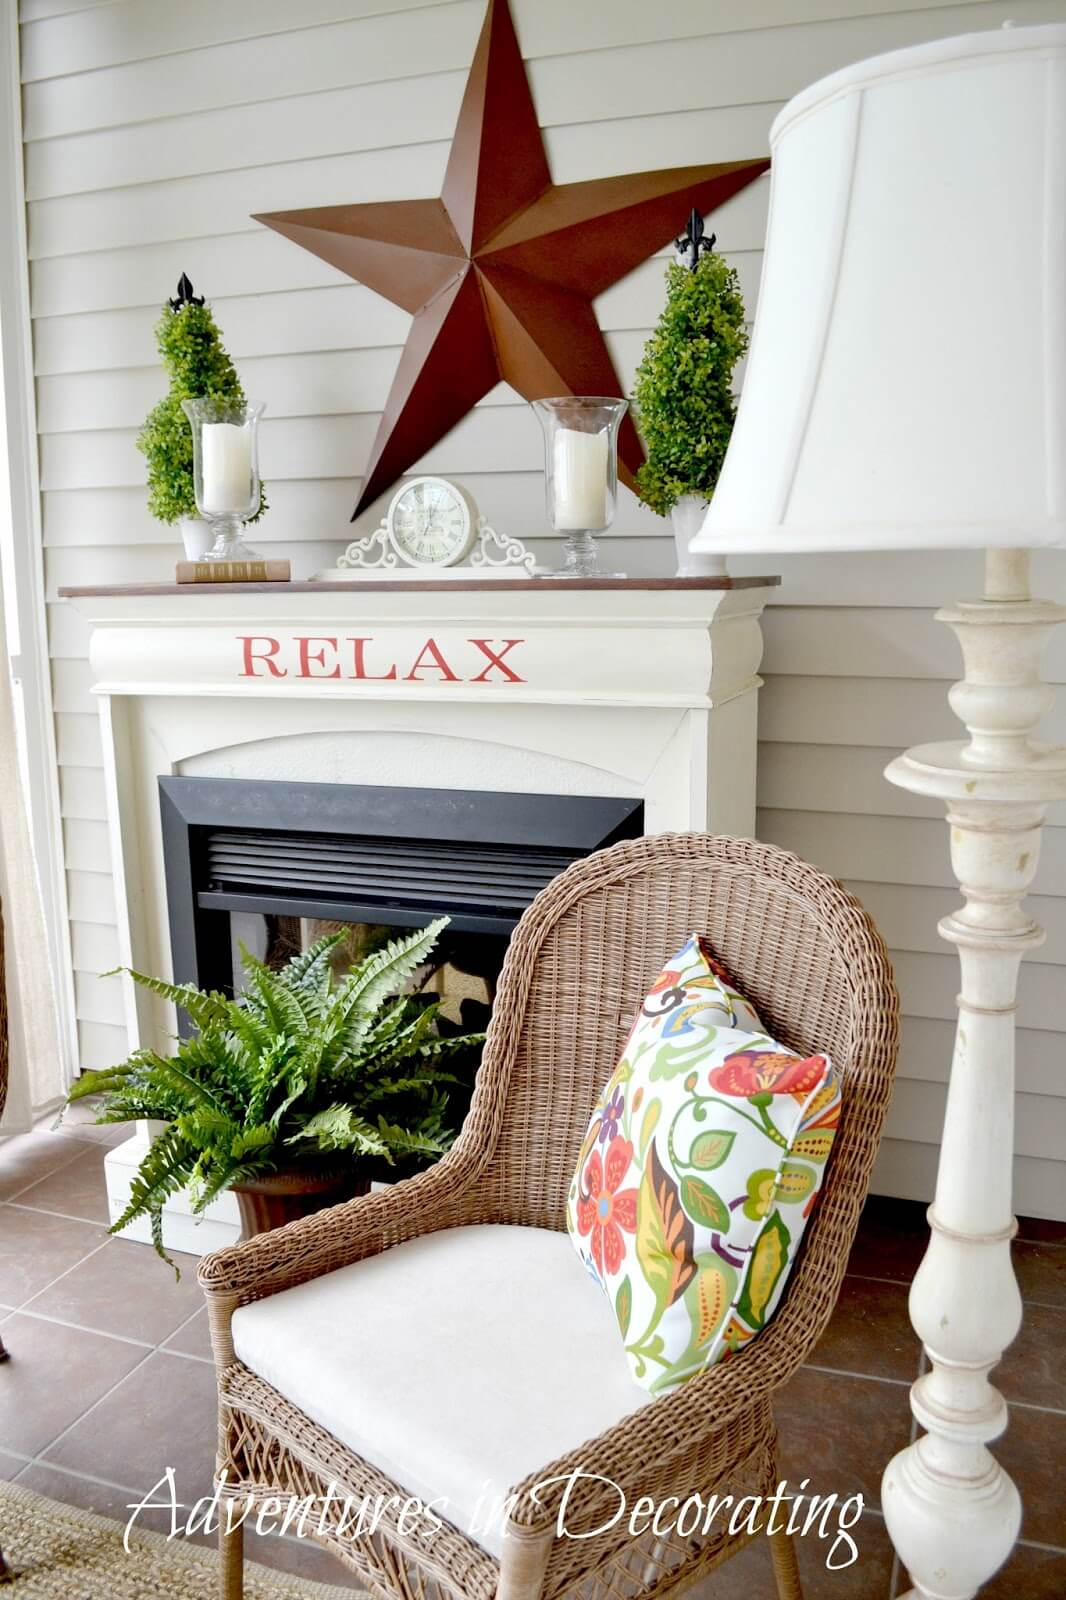 Create Your Own Relaxation with Vinyl Lettering